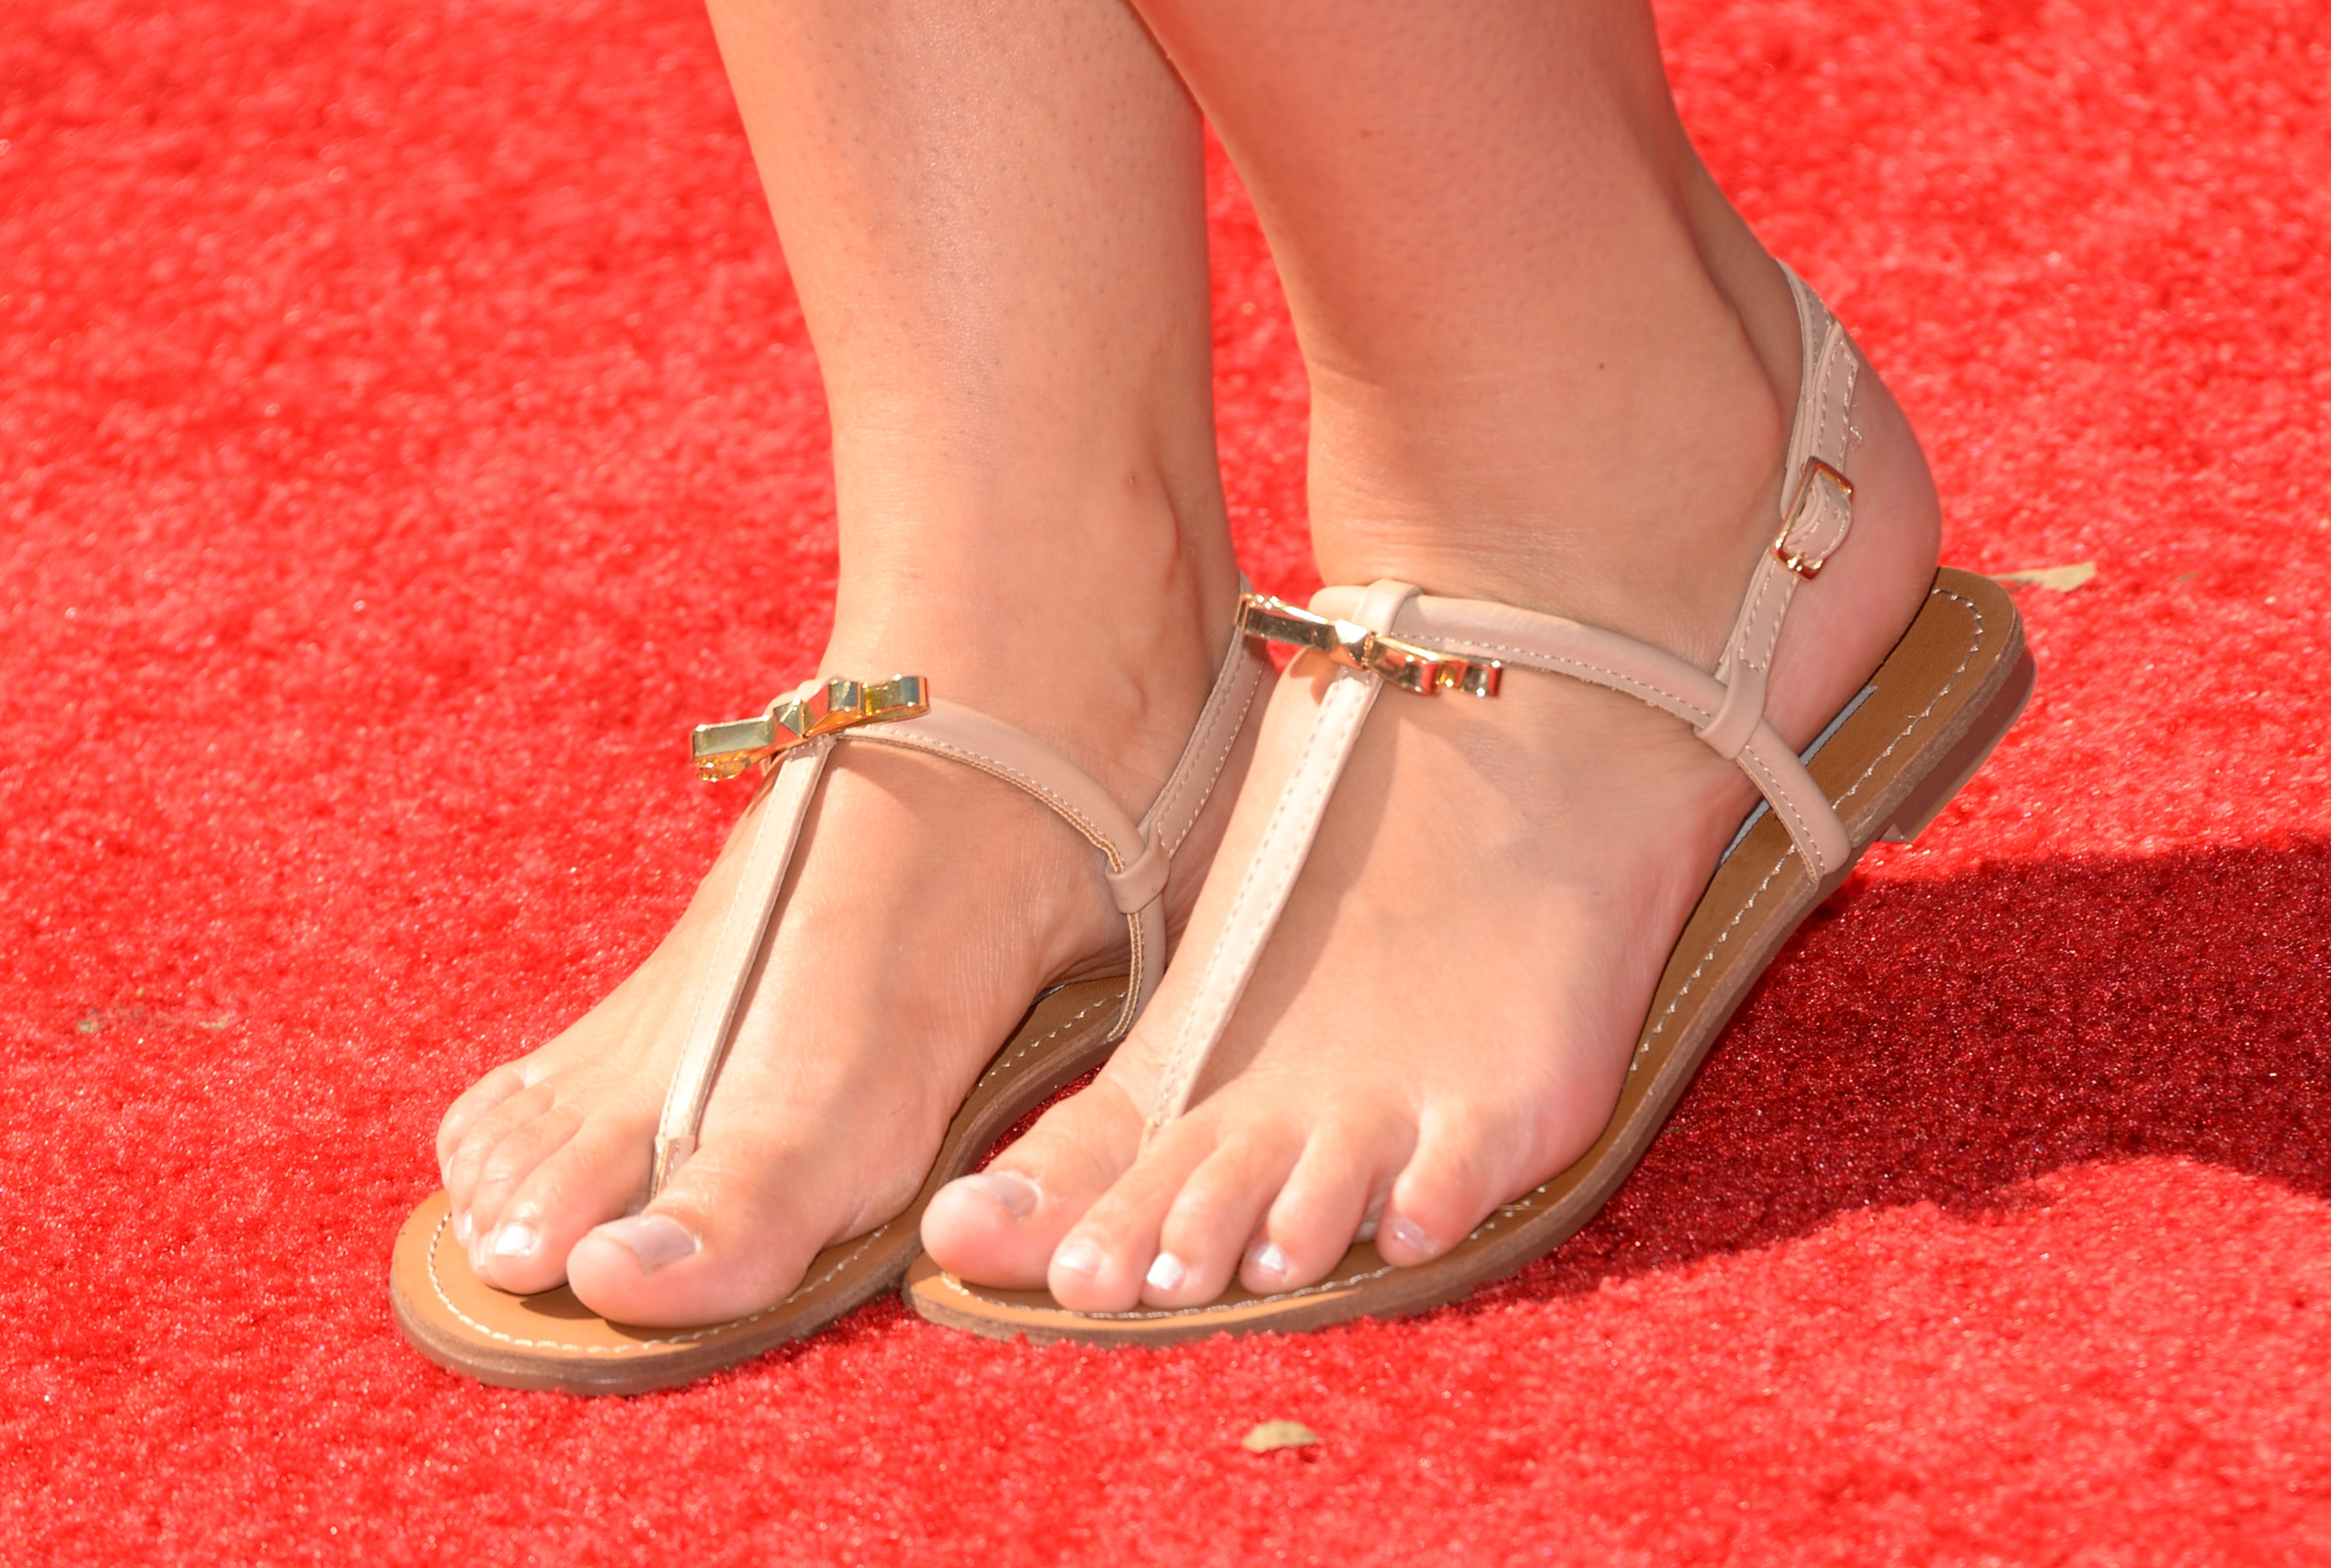 f3f550be9e9d 8 Ways to Make Sandals More Comfortable